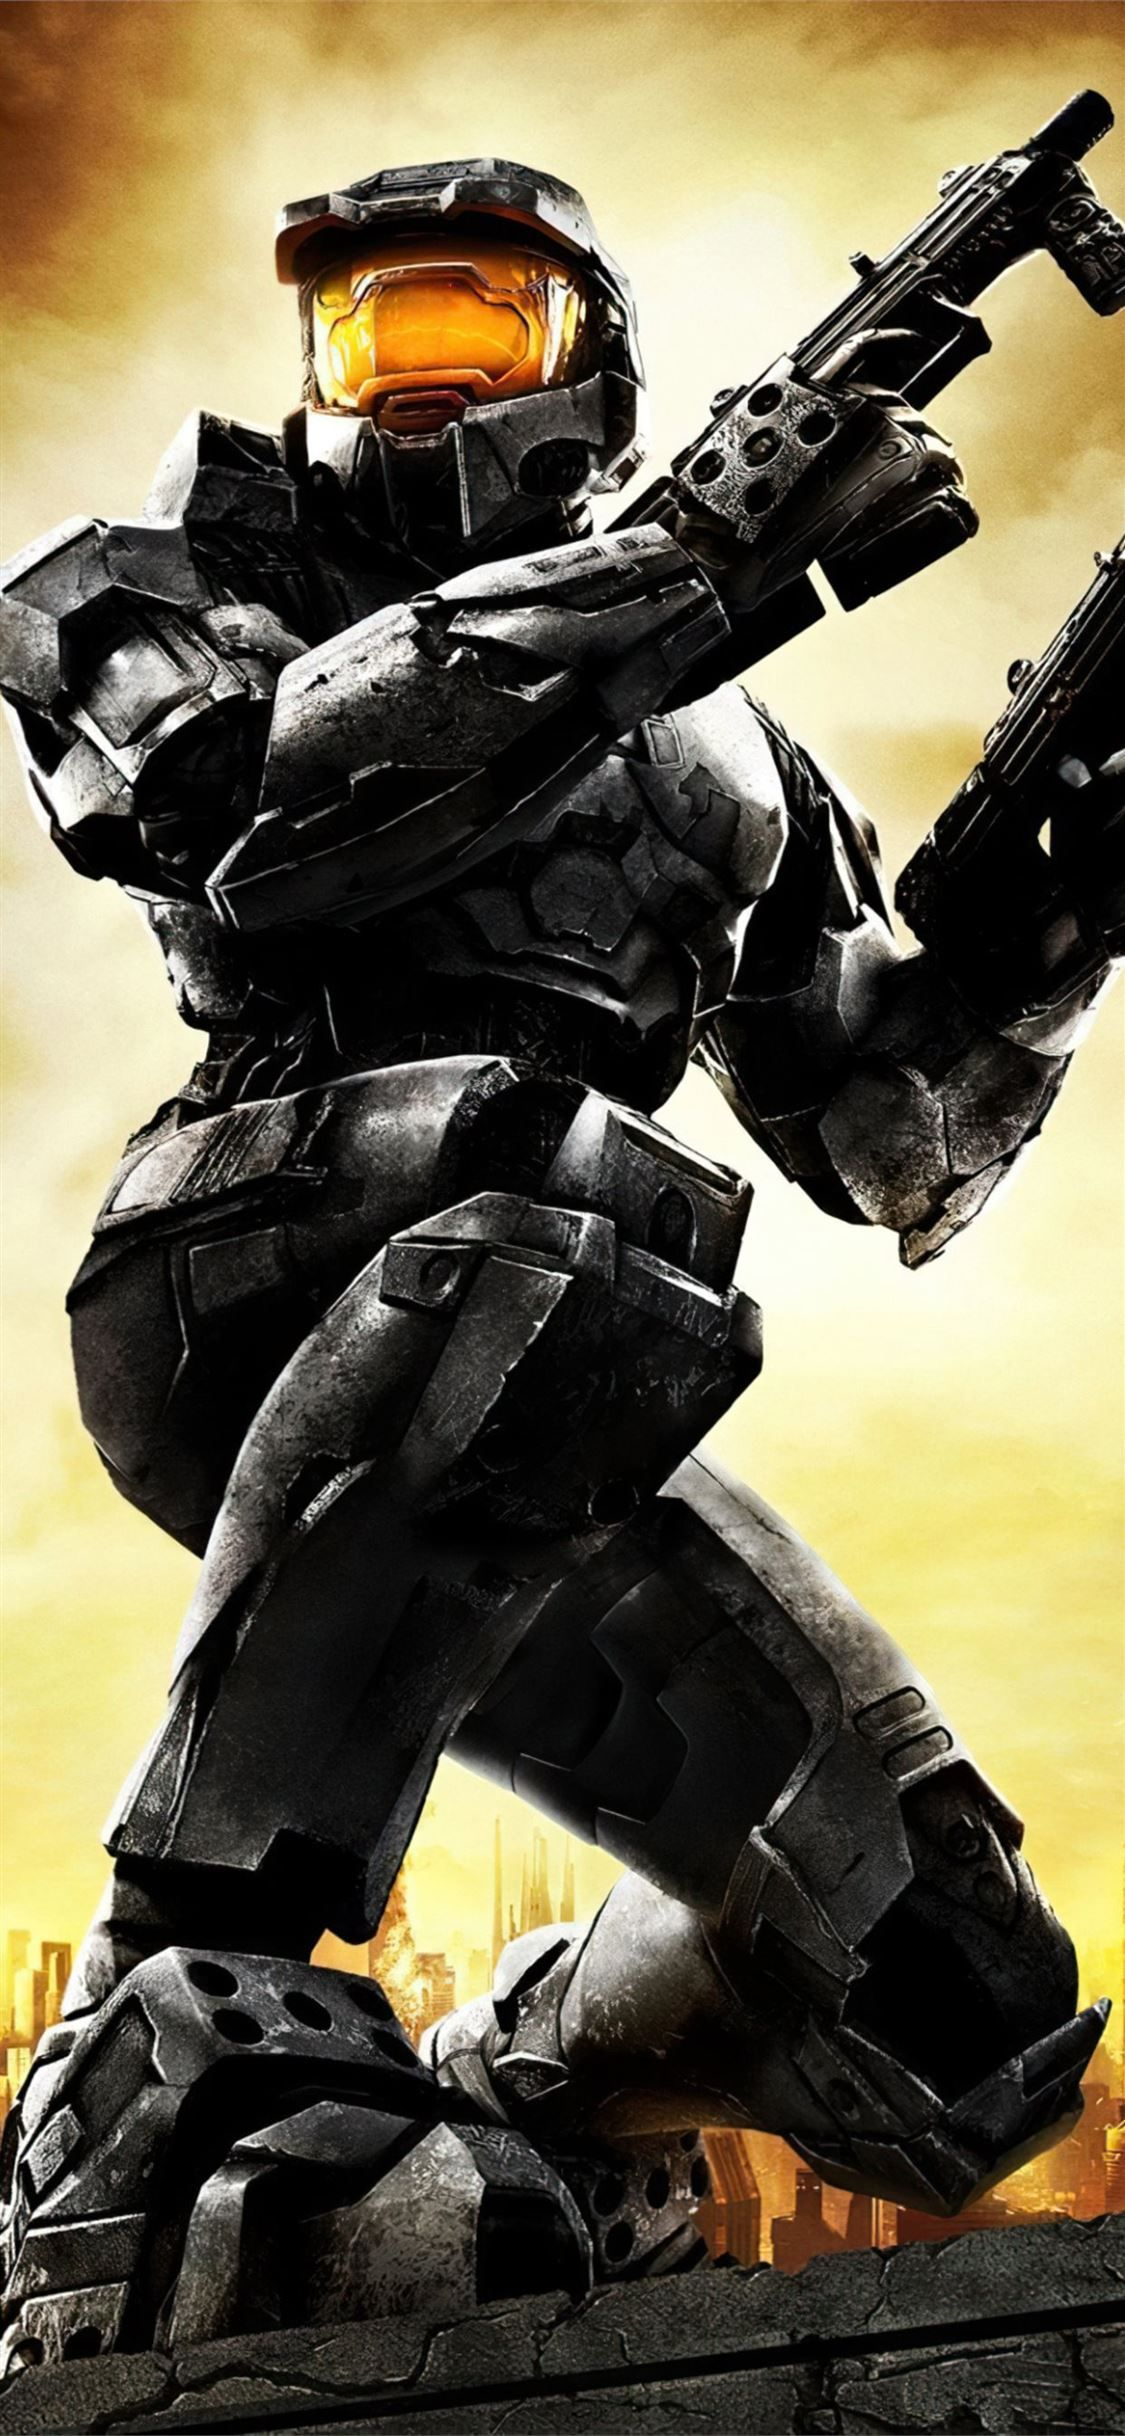 2020 Halo 4k Halo Games 4k Iphone11wallpaper In 2020 Halo Wallpaper Iphone 11